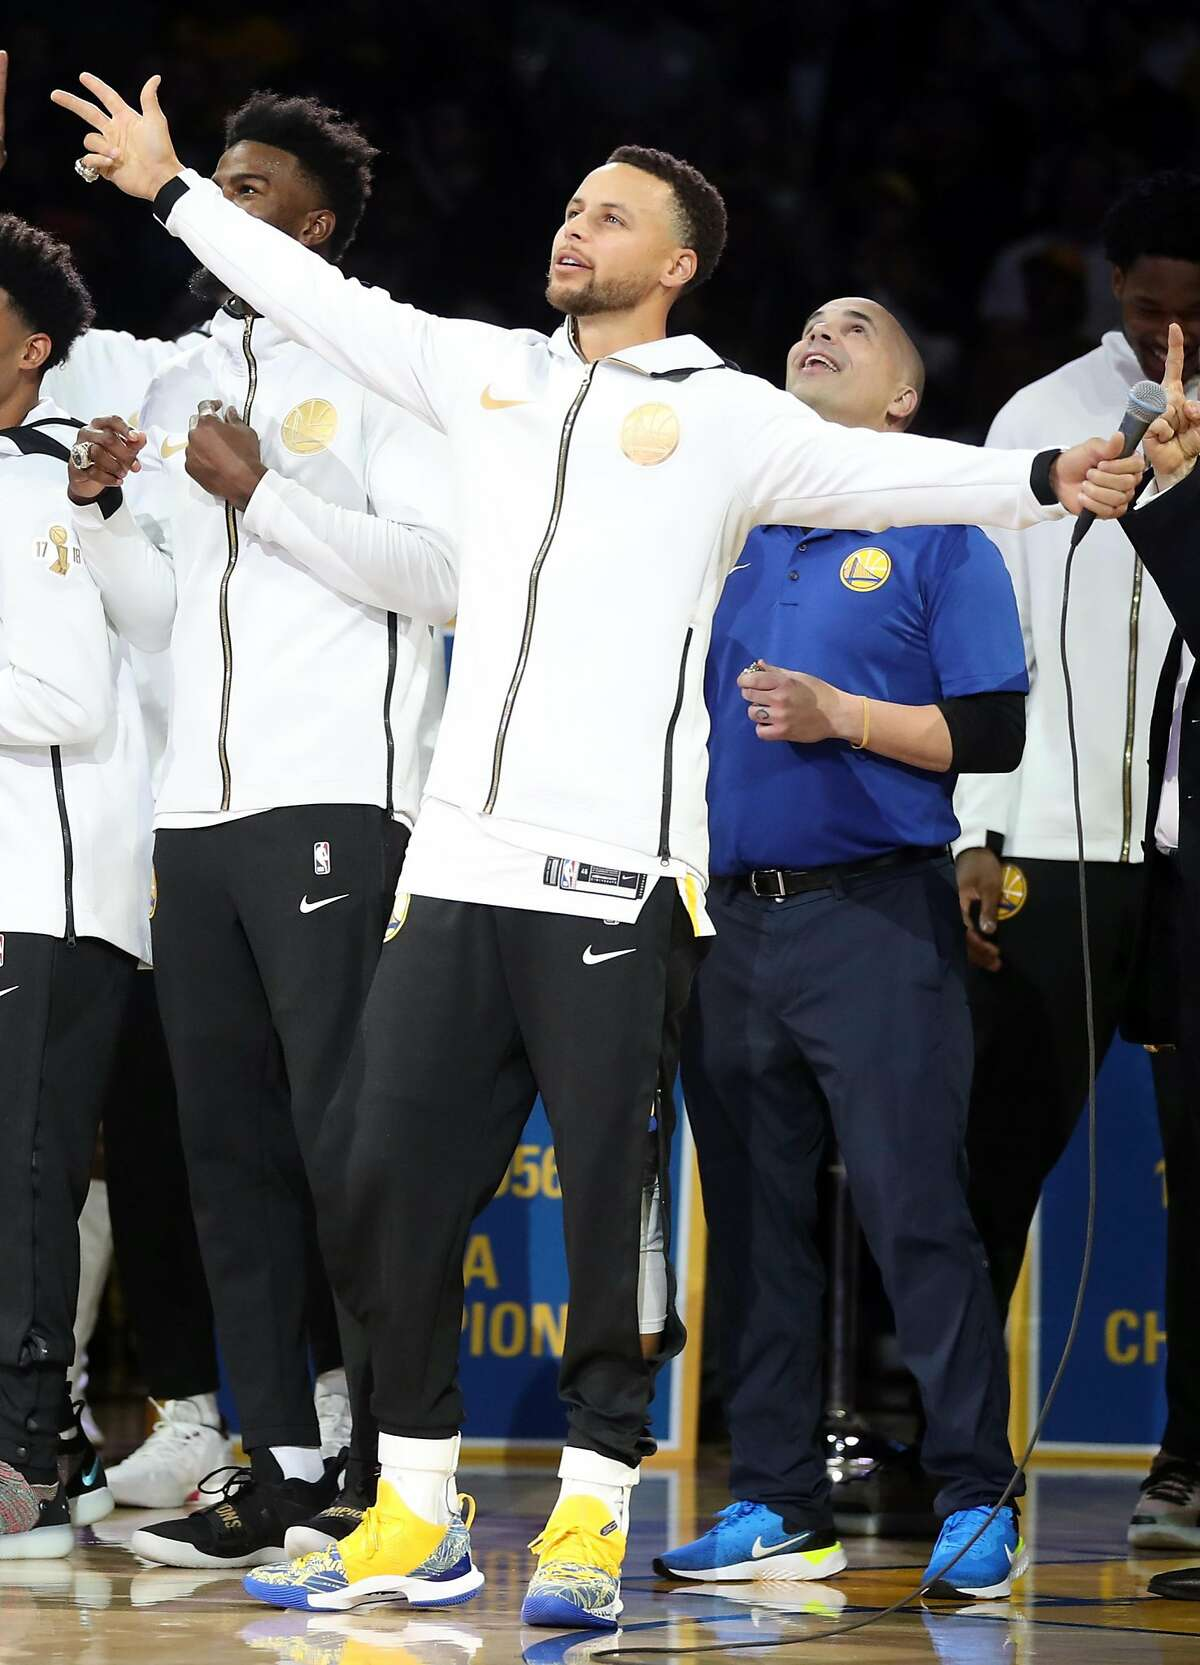 Golden State Warriors' Stephen Curry and equipment manager Eric Housen watch as 2018 NBA Championship banner is unveiled during ceremony before Opening Night game against Oklahoma City Thunder at Oracle Arena in Oakland, Calif. on Tuesday, October 16, 2018.